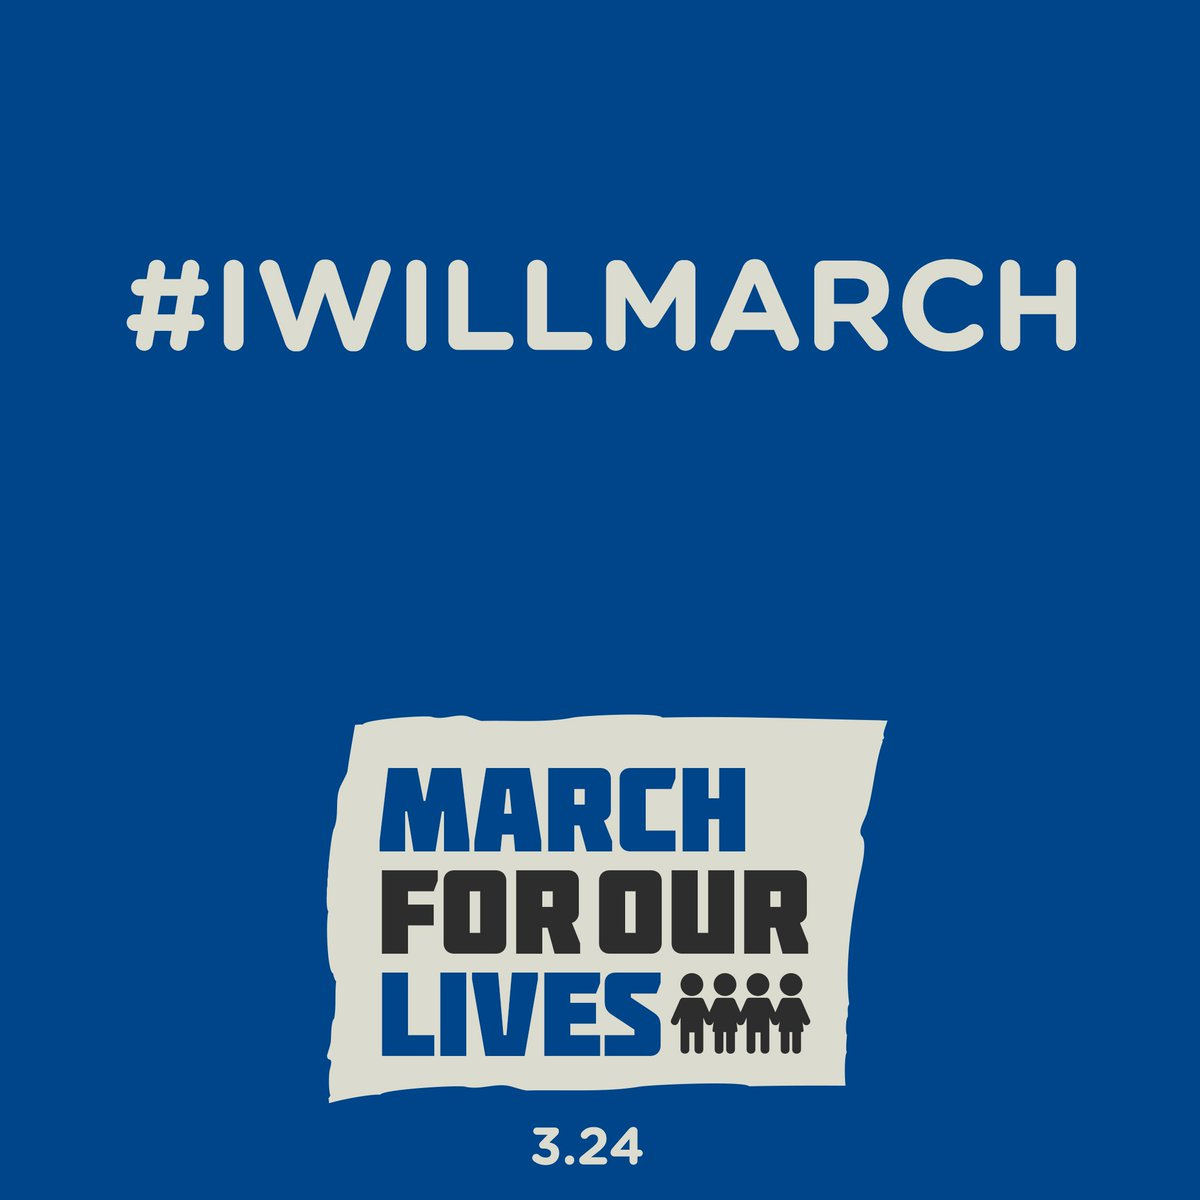 Full support and love! #IWillMarch  RSVP to march here: